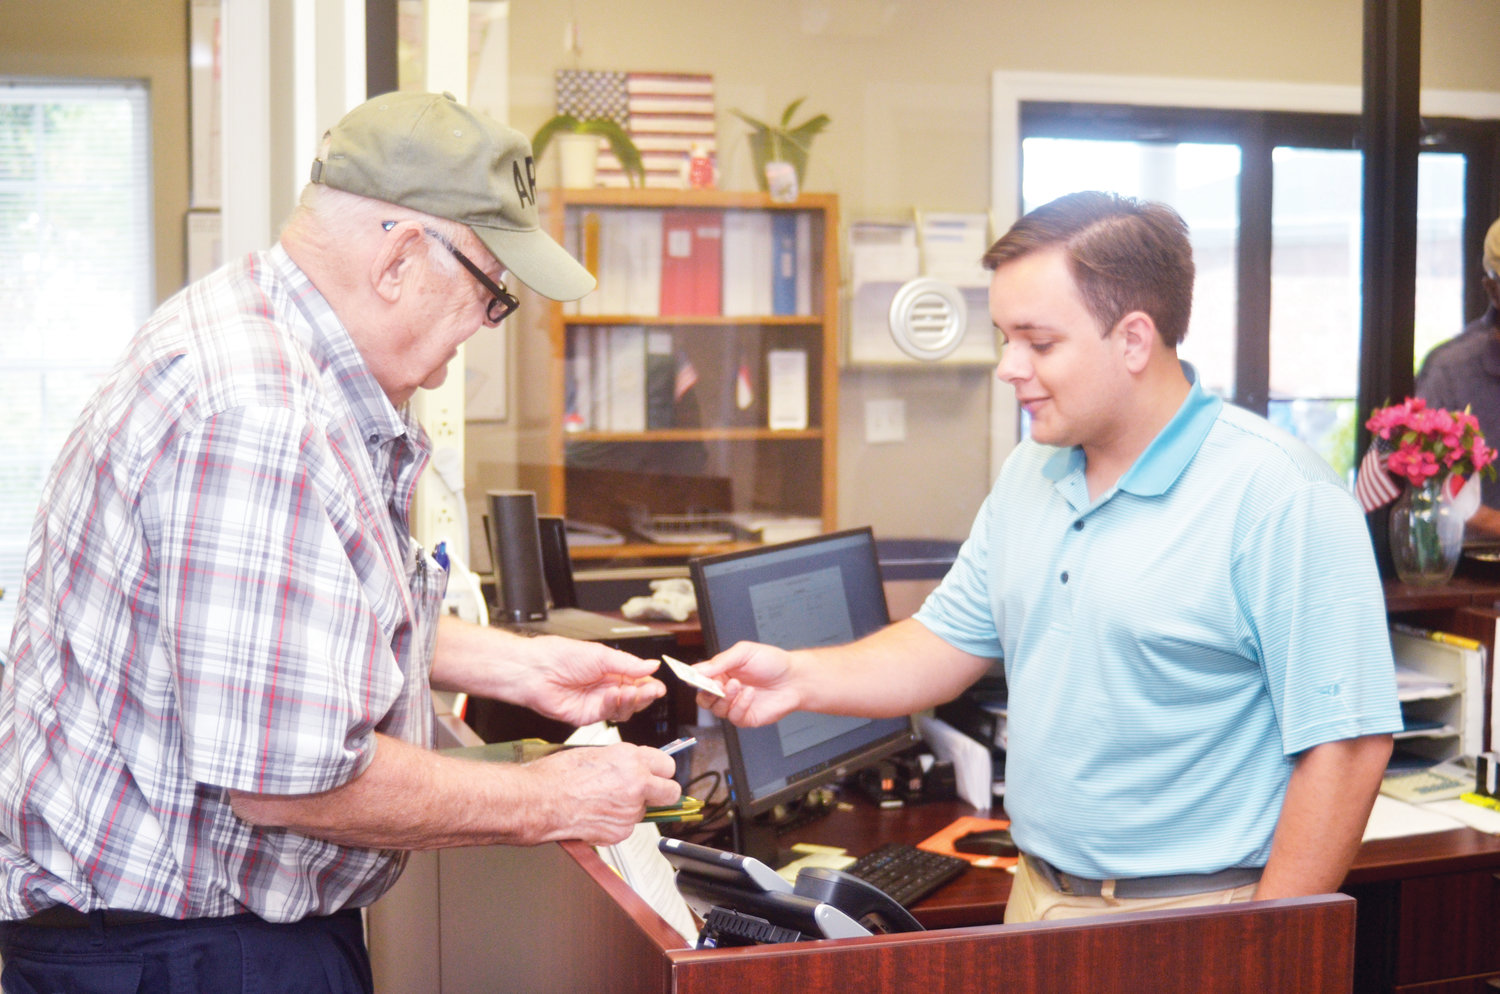 Siler City Mayor John Grimes (left) filed on Friday for re-election as the town's mayor. Chance Mashburn (right), elections specialist at the Chatham County Board of Elections, verified his identification upon filing.